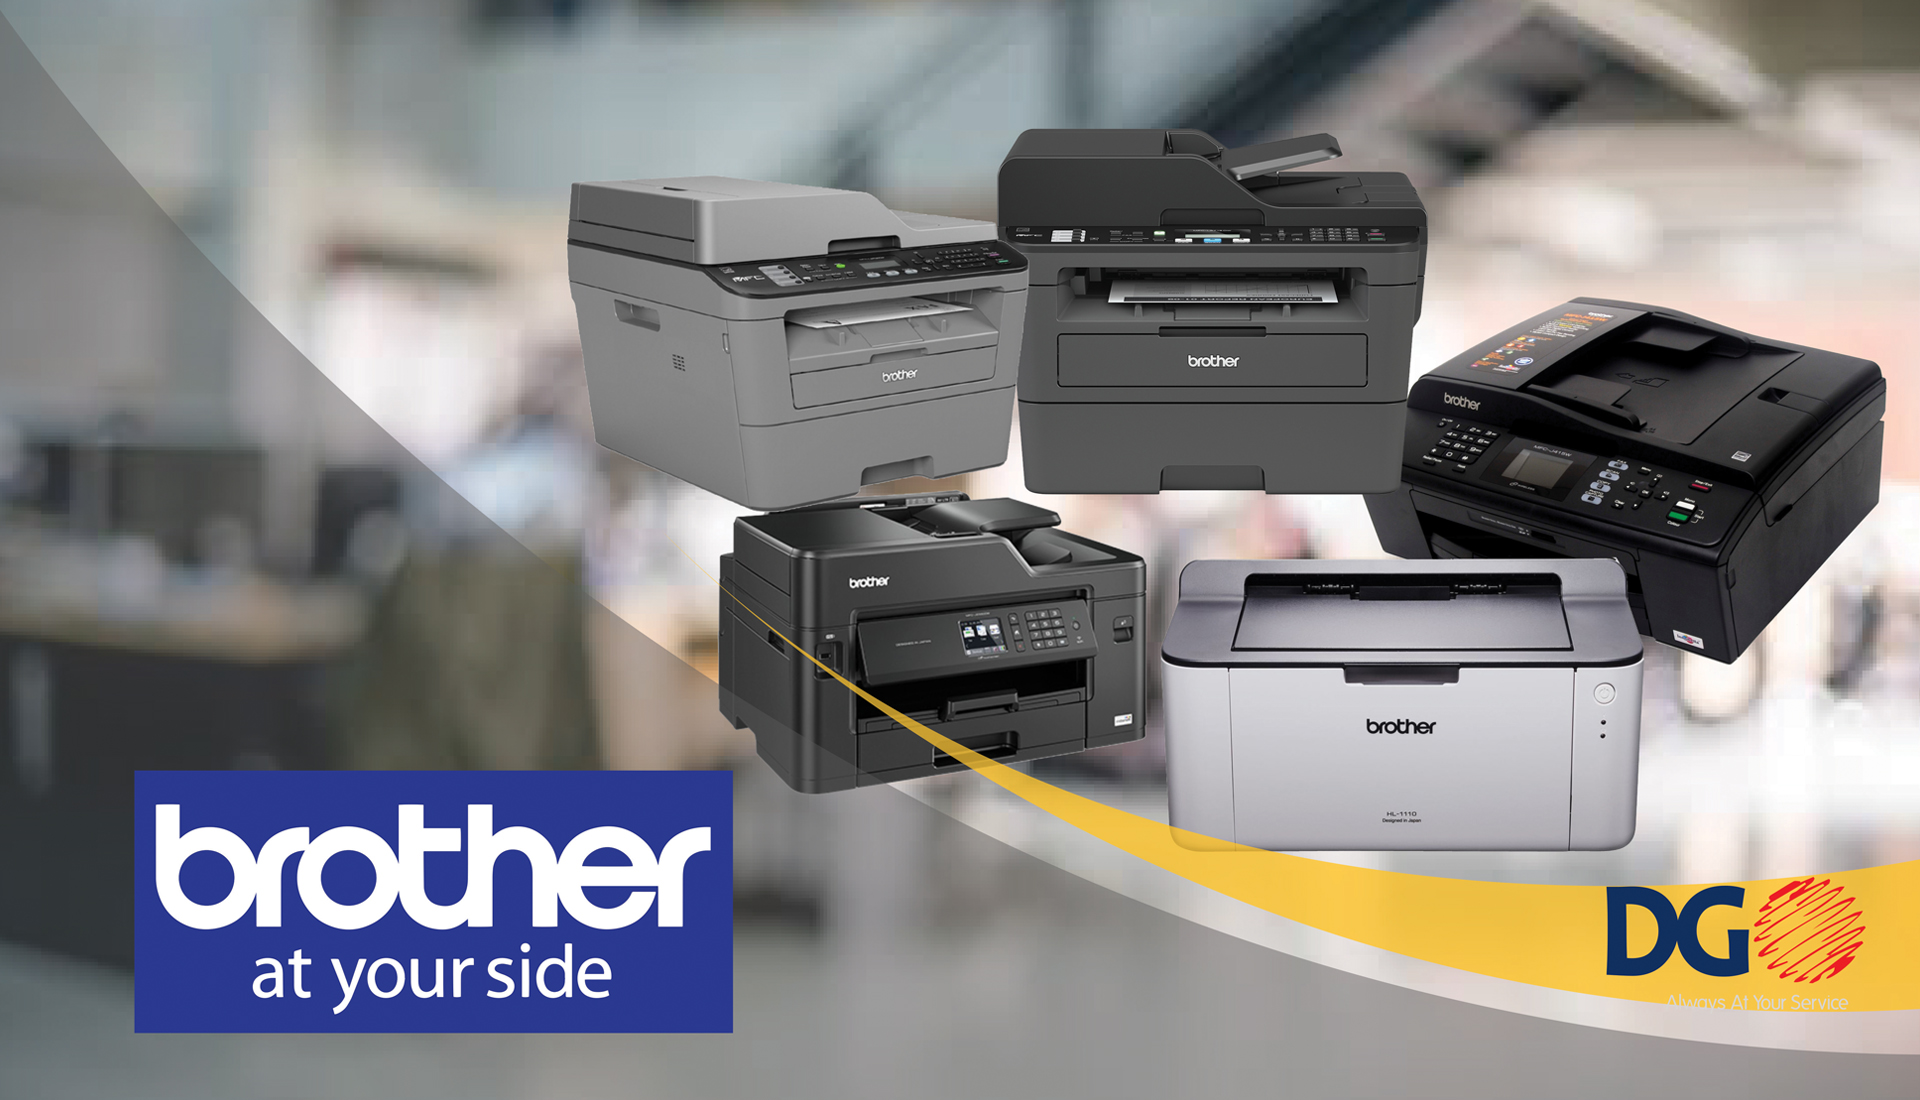 brother printer-banner-resize